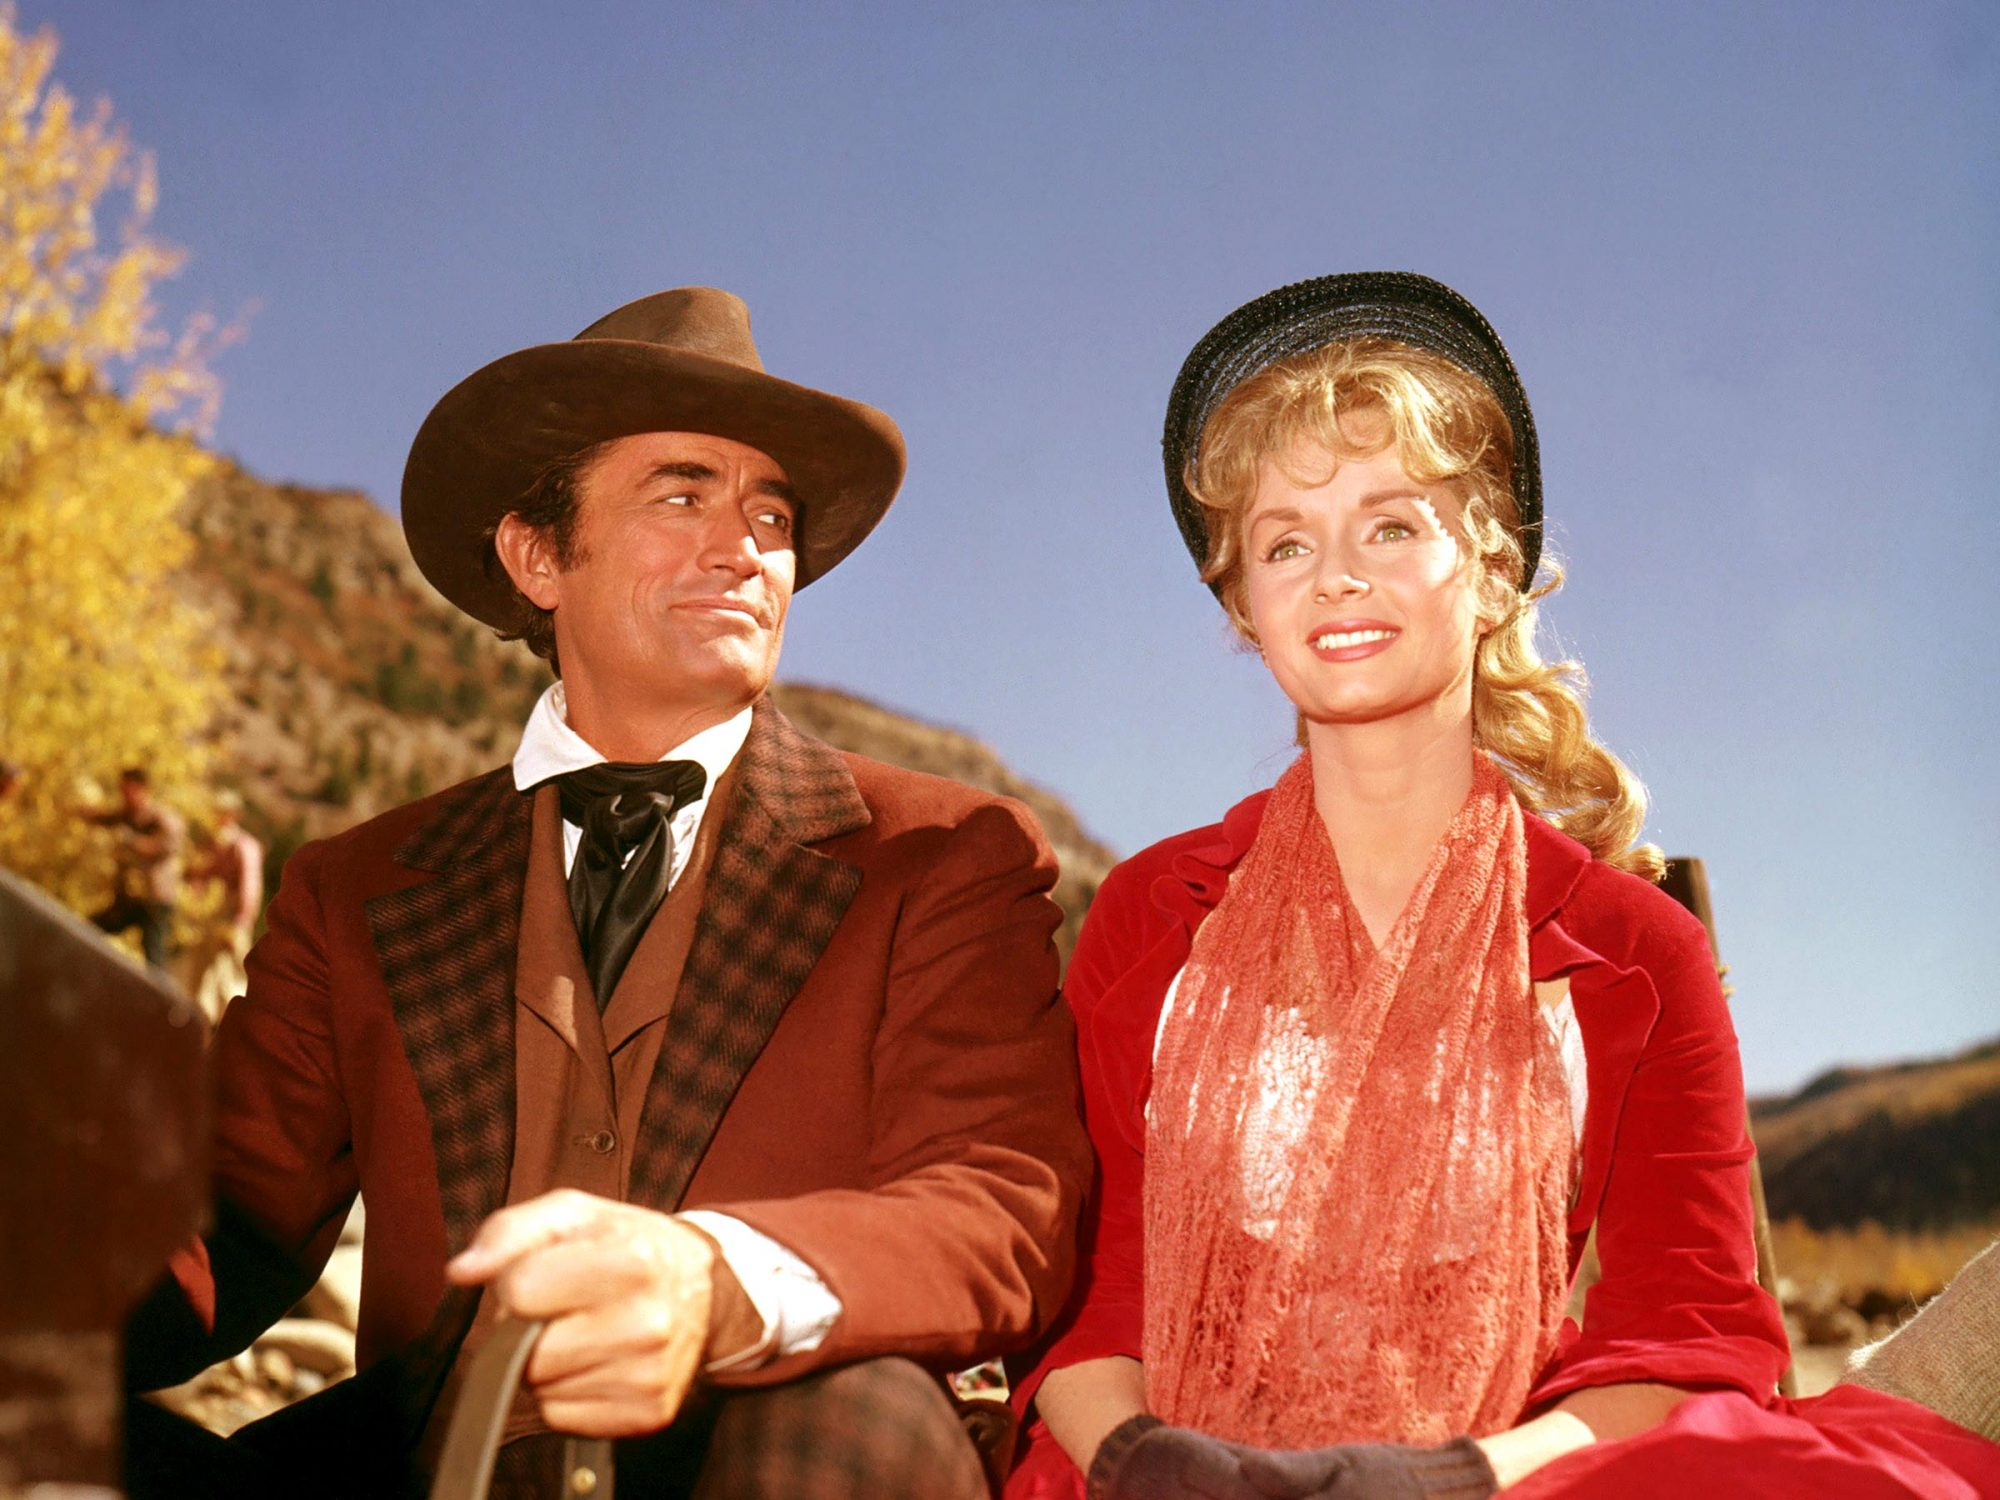 HOW THE WEST WAS WON, Gregory Peck, Debbie Reynolds, 1962